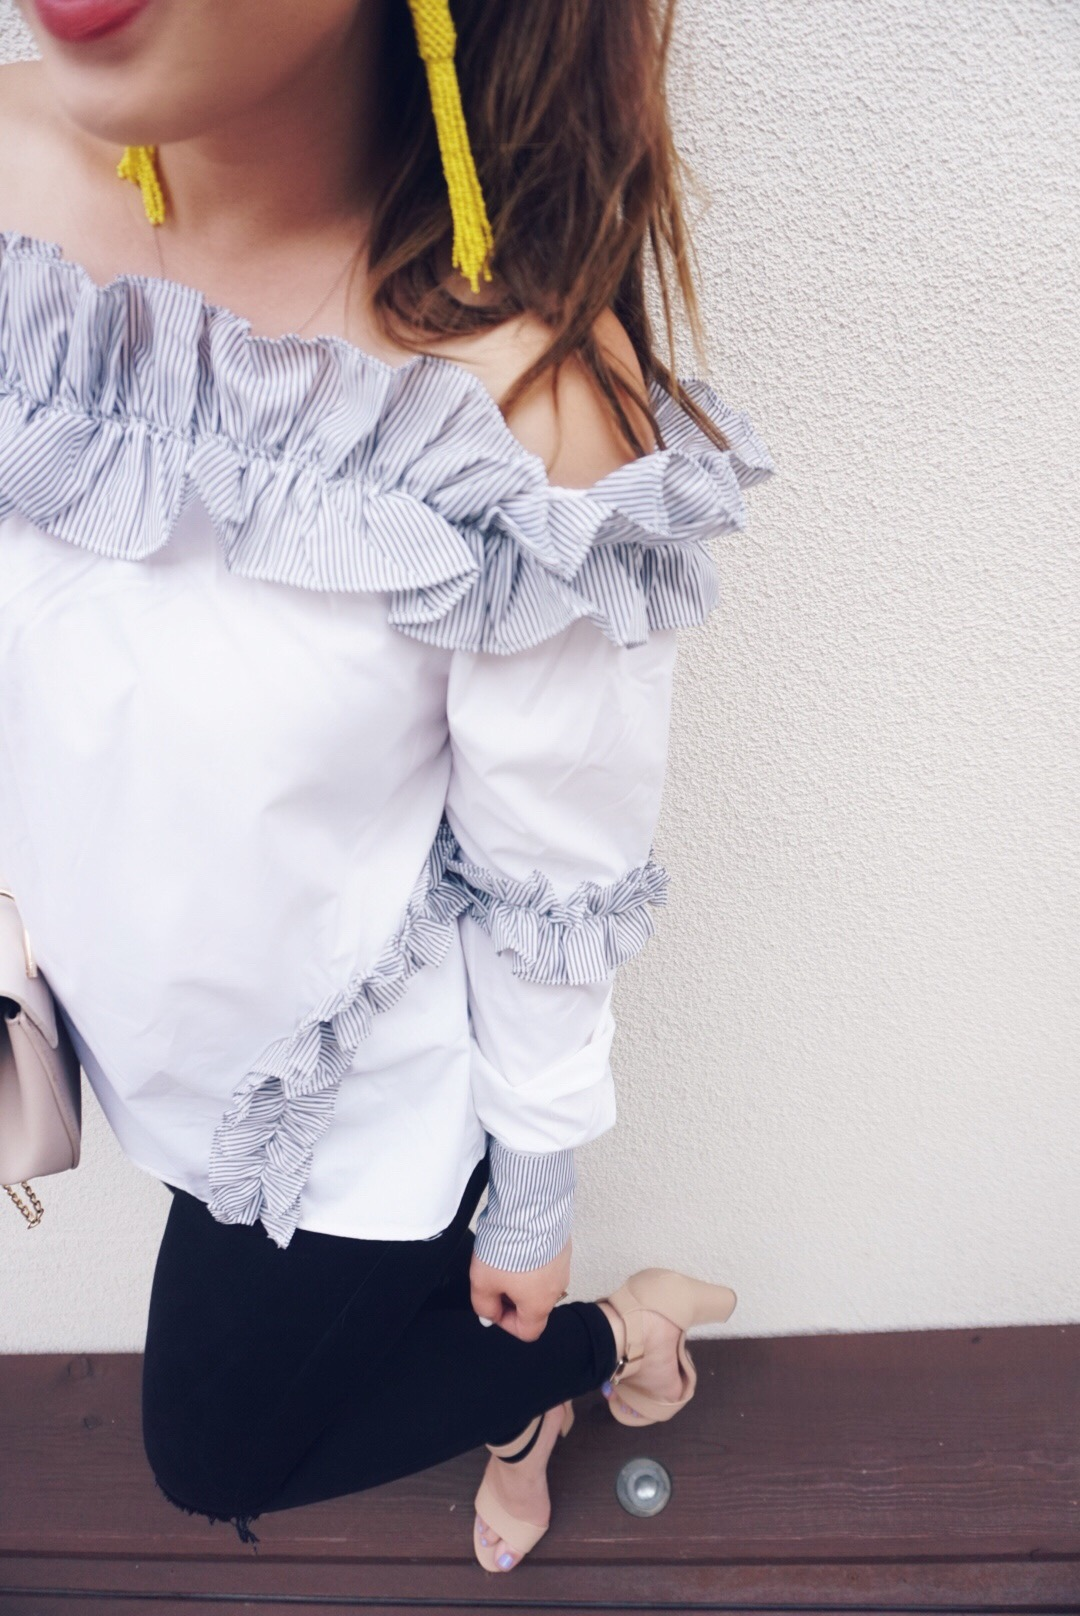 Ruffle Details + Top is Only $35!